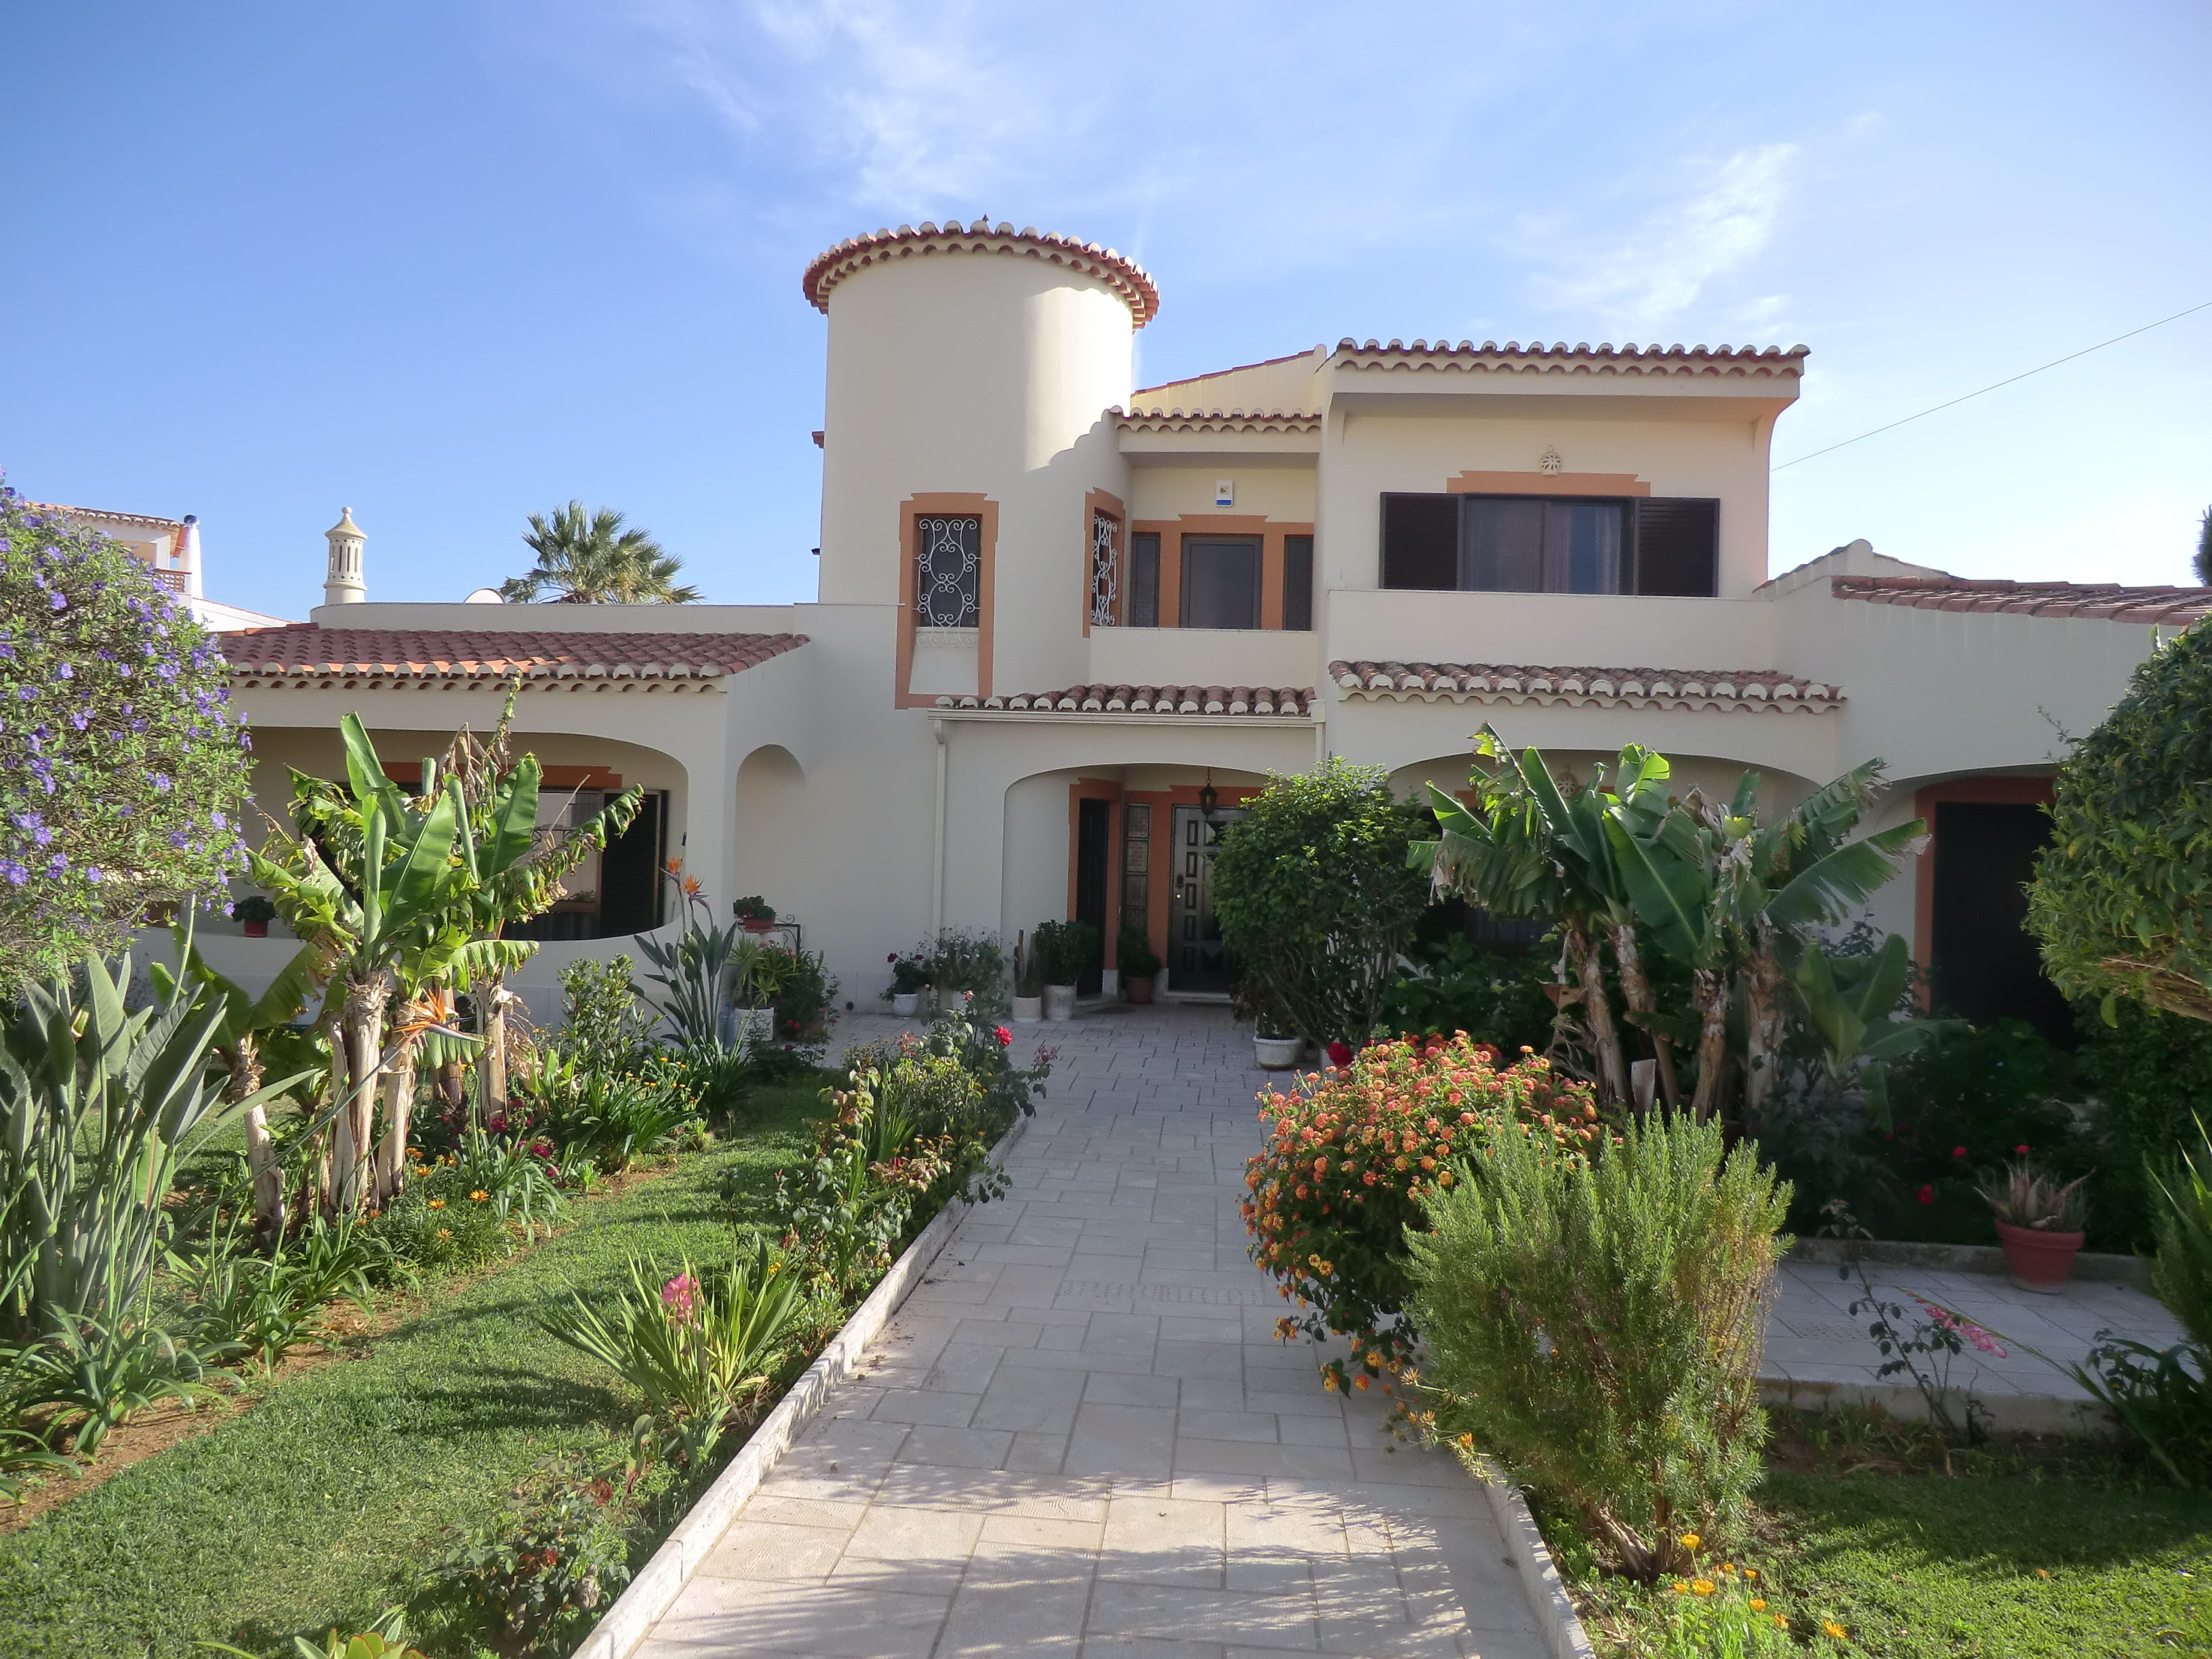 traditional, spacious villa on a great sized plot near to praia da luz, west algarve